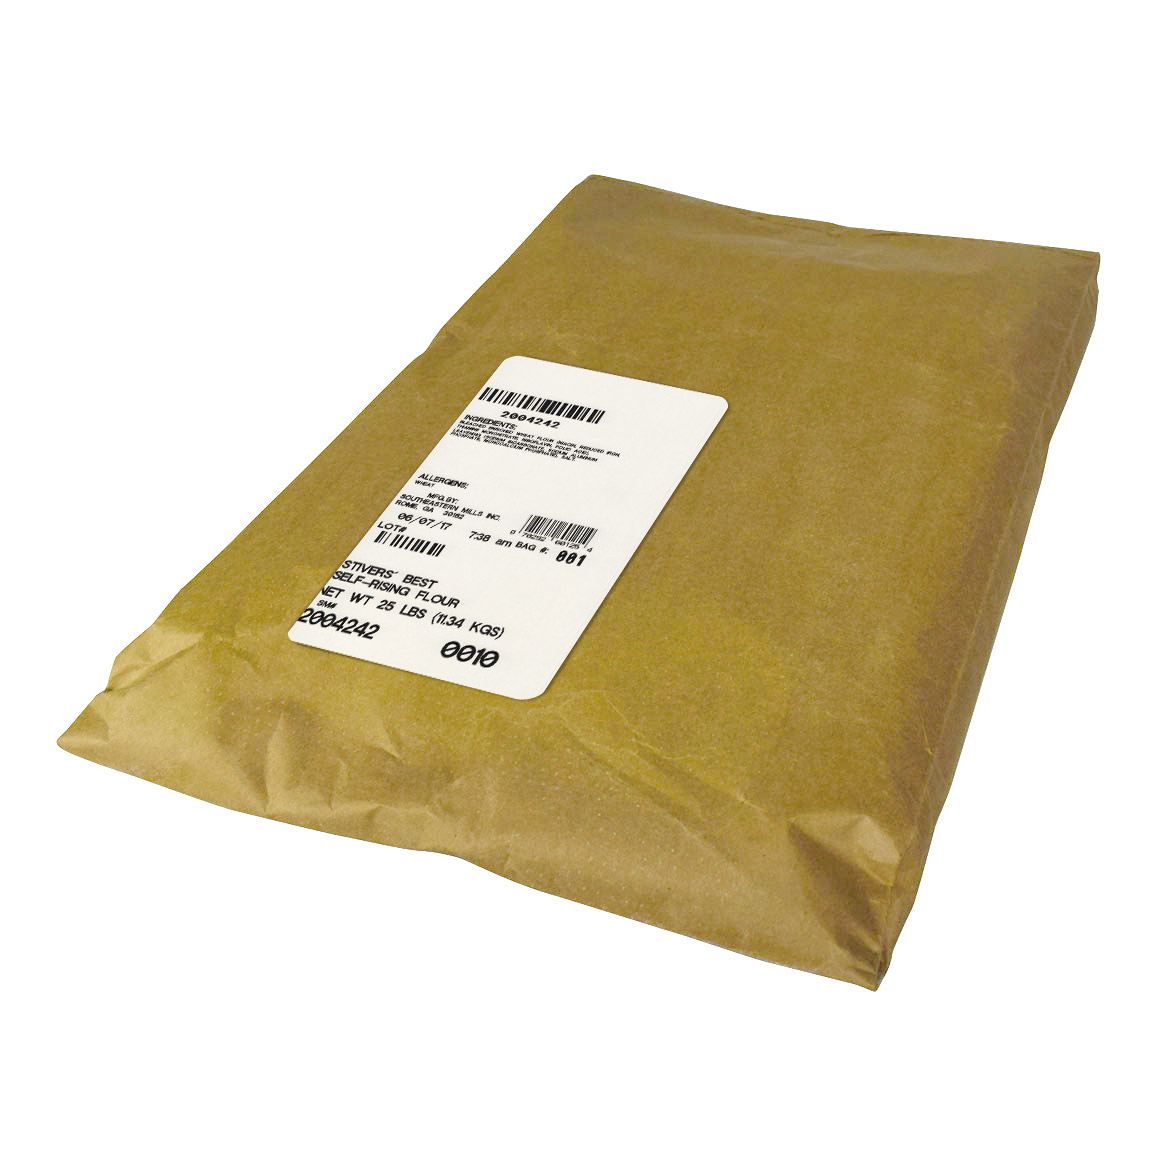 Southeastern Mills Stiver's Best Flour Self Rising 25lbs (PACK OF 1)